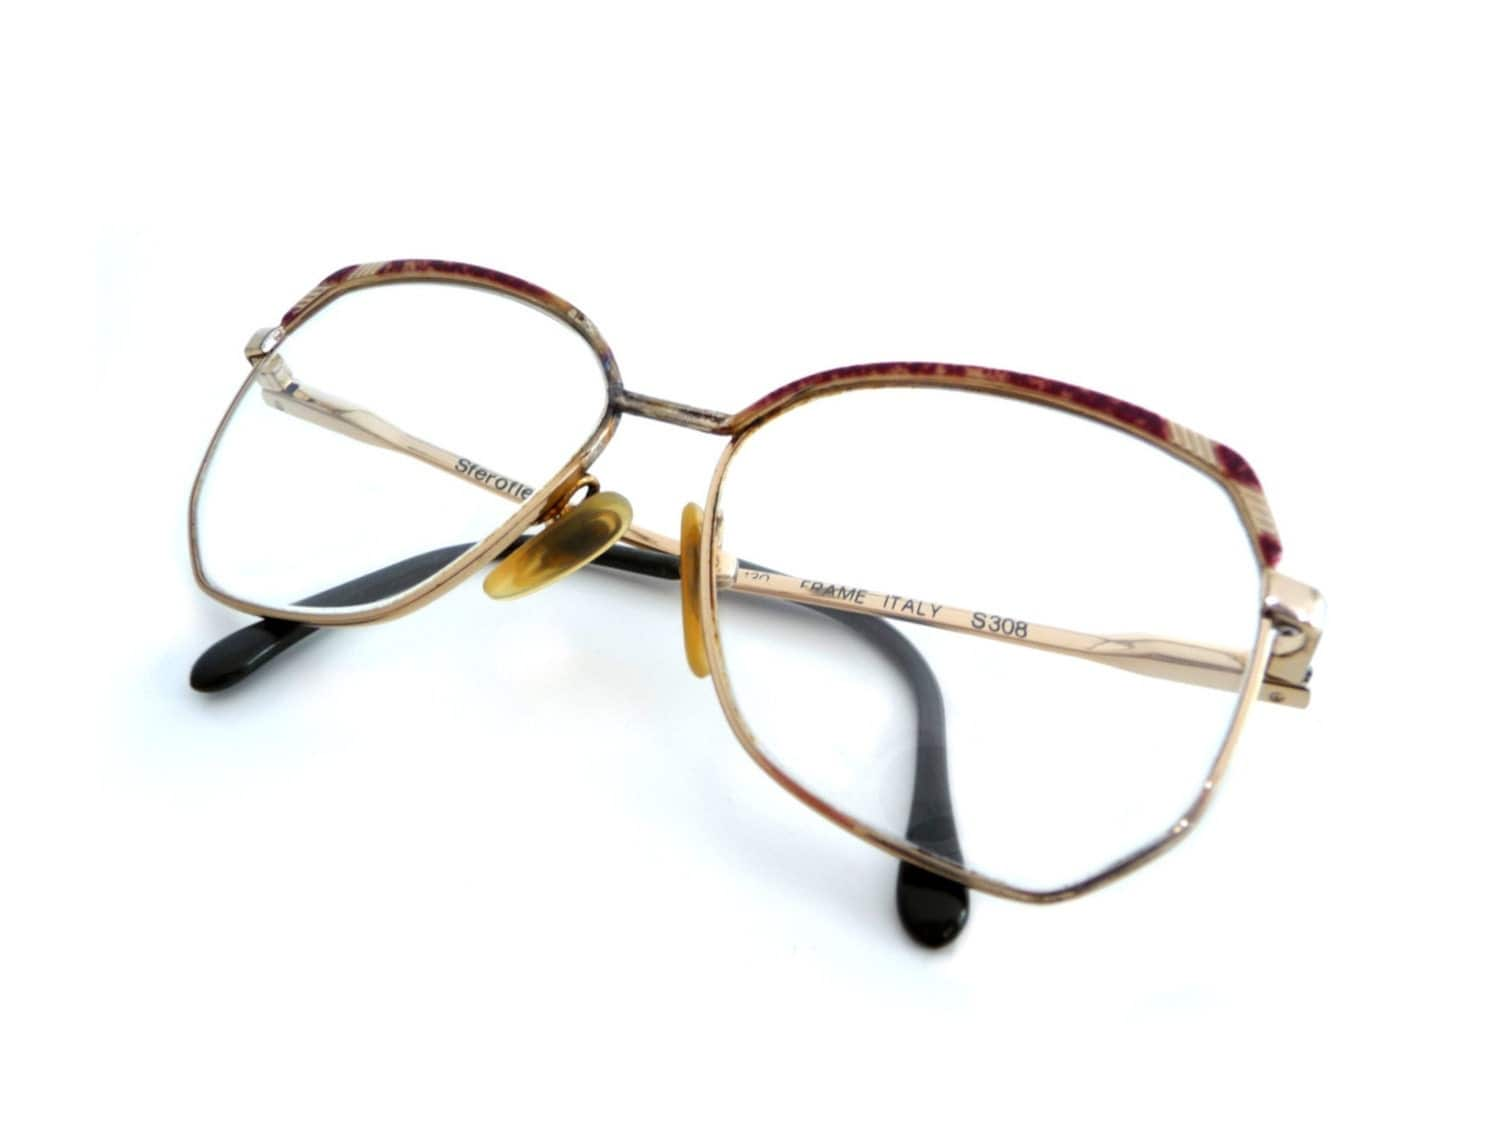 Glasses Frames Not Owned By Luxottica : Vintage Sferoflex Luxottica Eyeglasses Frames by madlyvintage